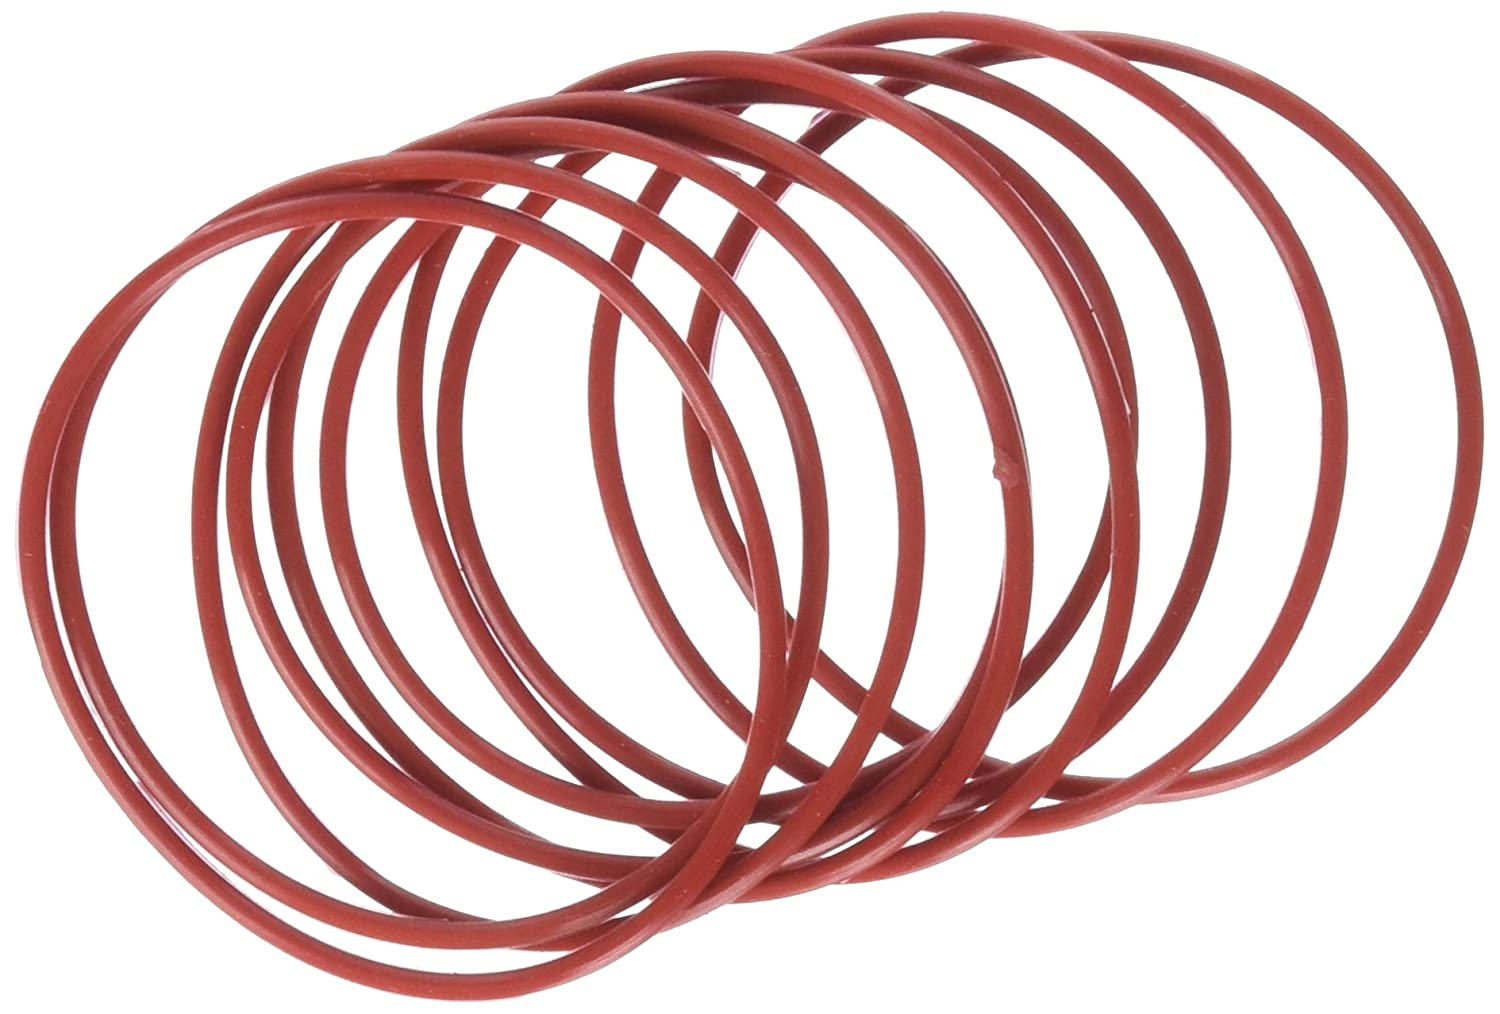 Uxcell Mechanical Rubber O Ring Oil Seal Gaskets (10 Piece), Red, 58mm x 2mm